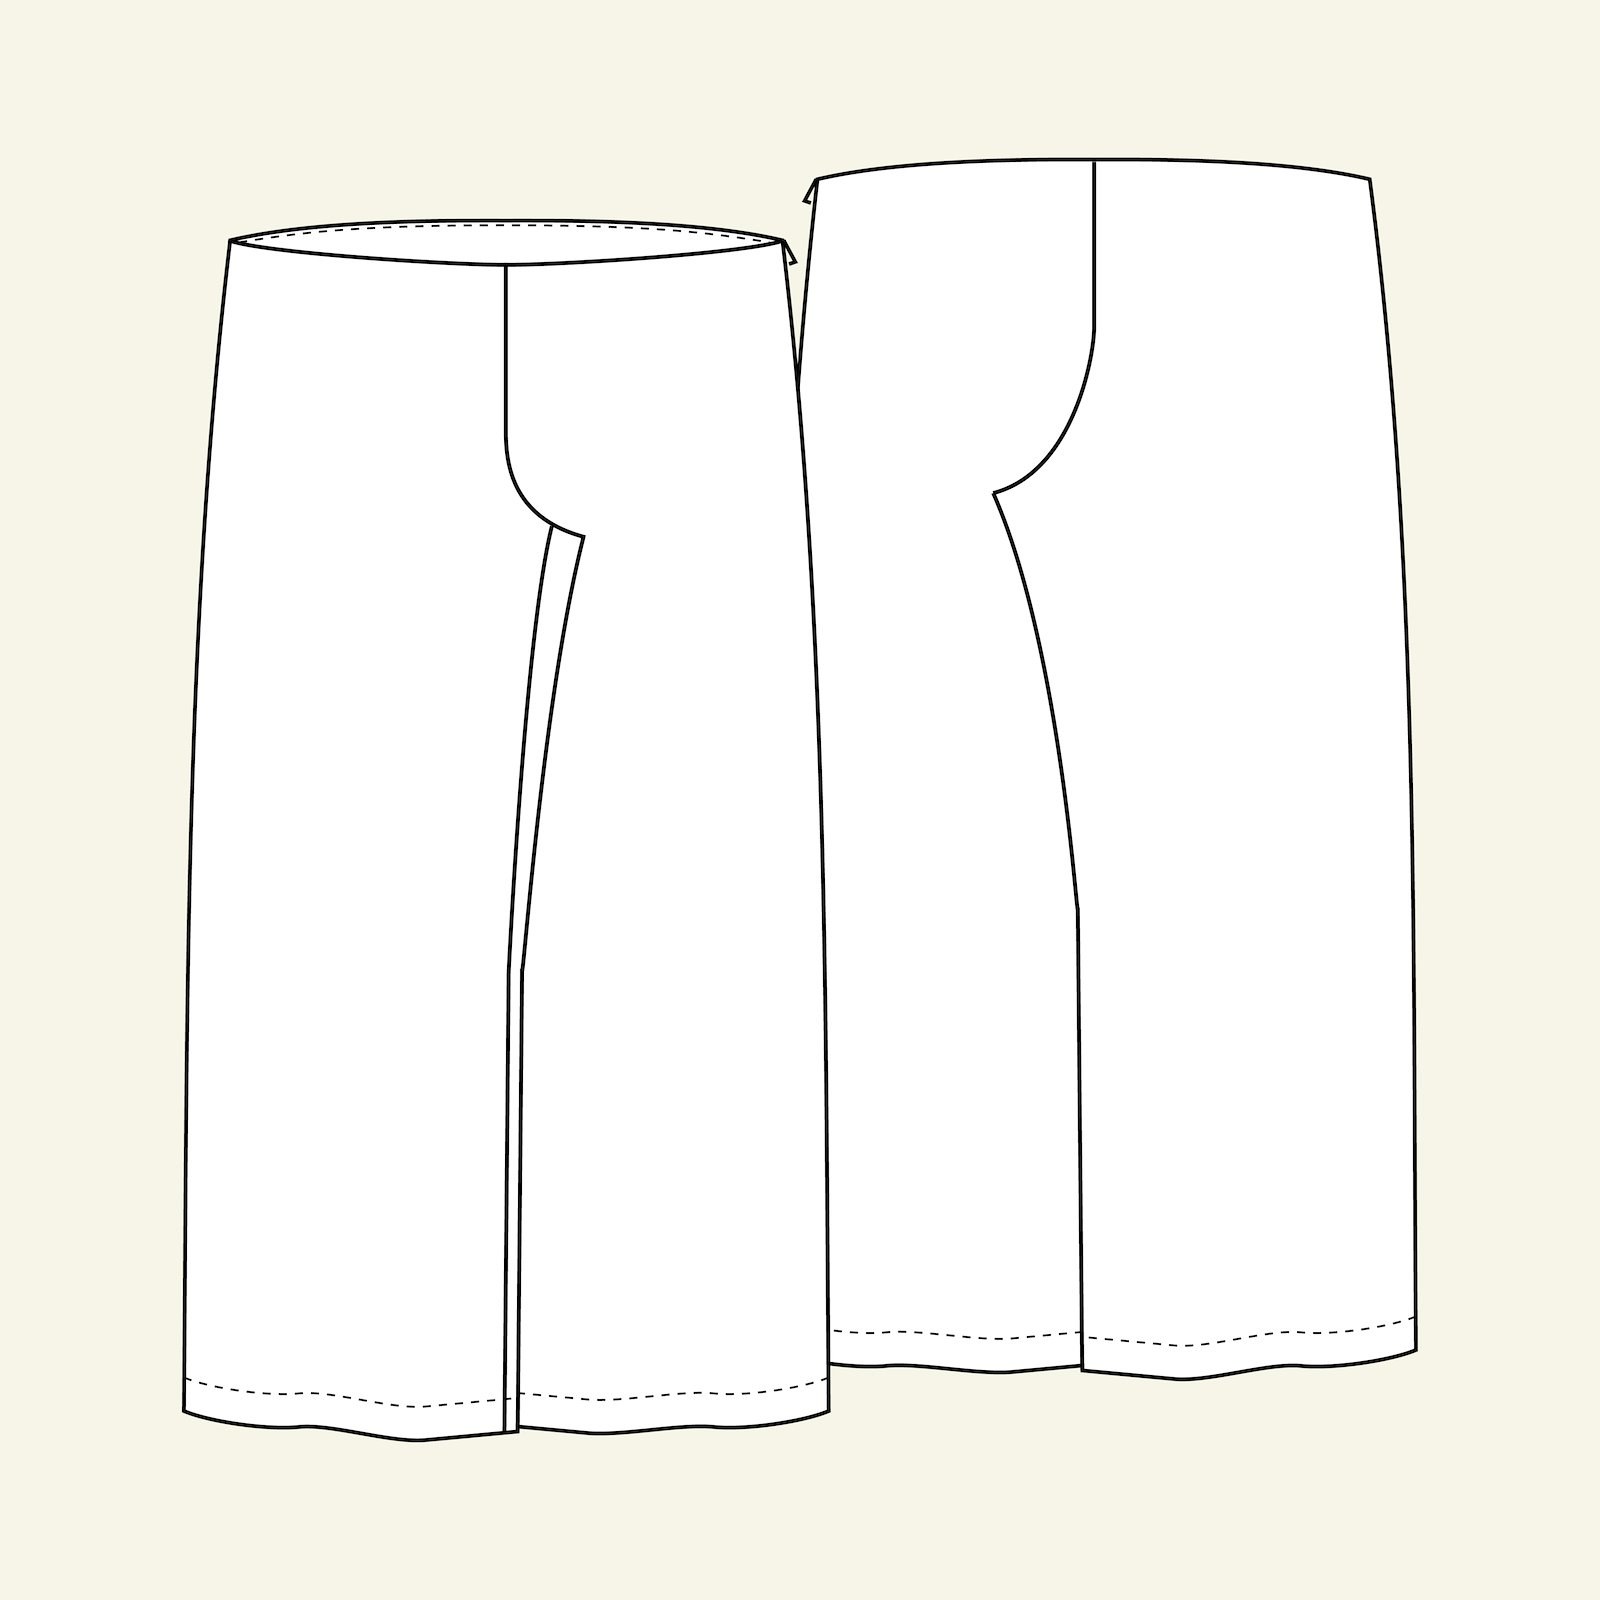 Boot cut trousers, 46/18 p70005_pack